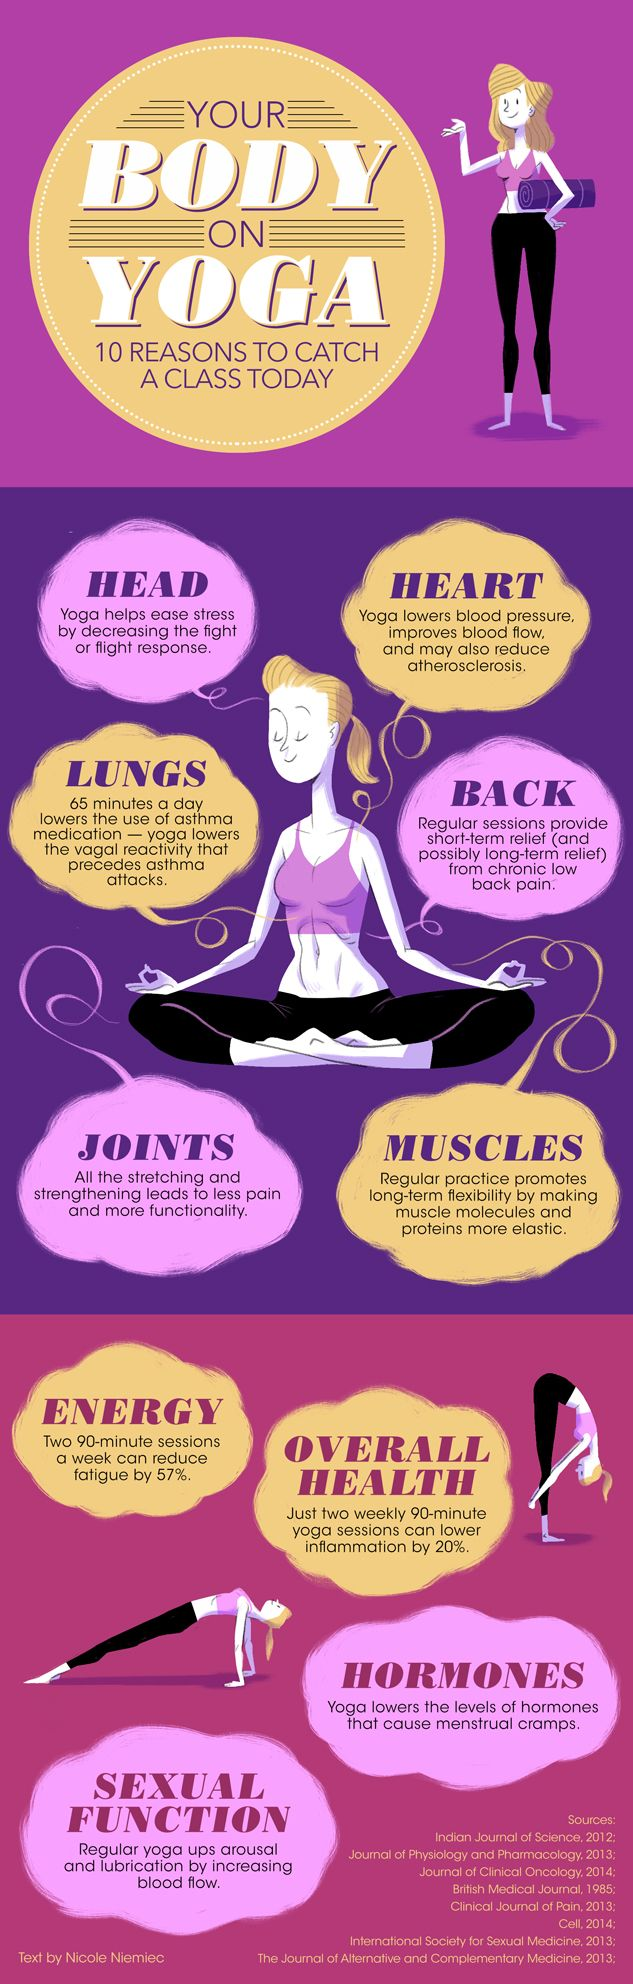 Your Body On Yoga. #noom #weightloss